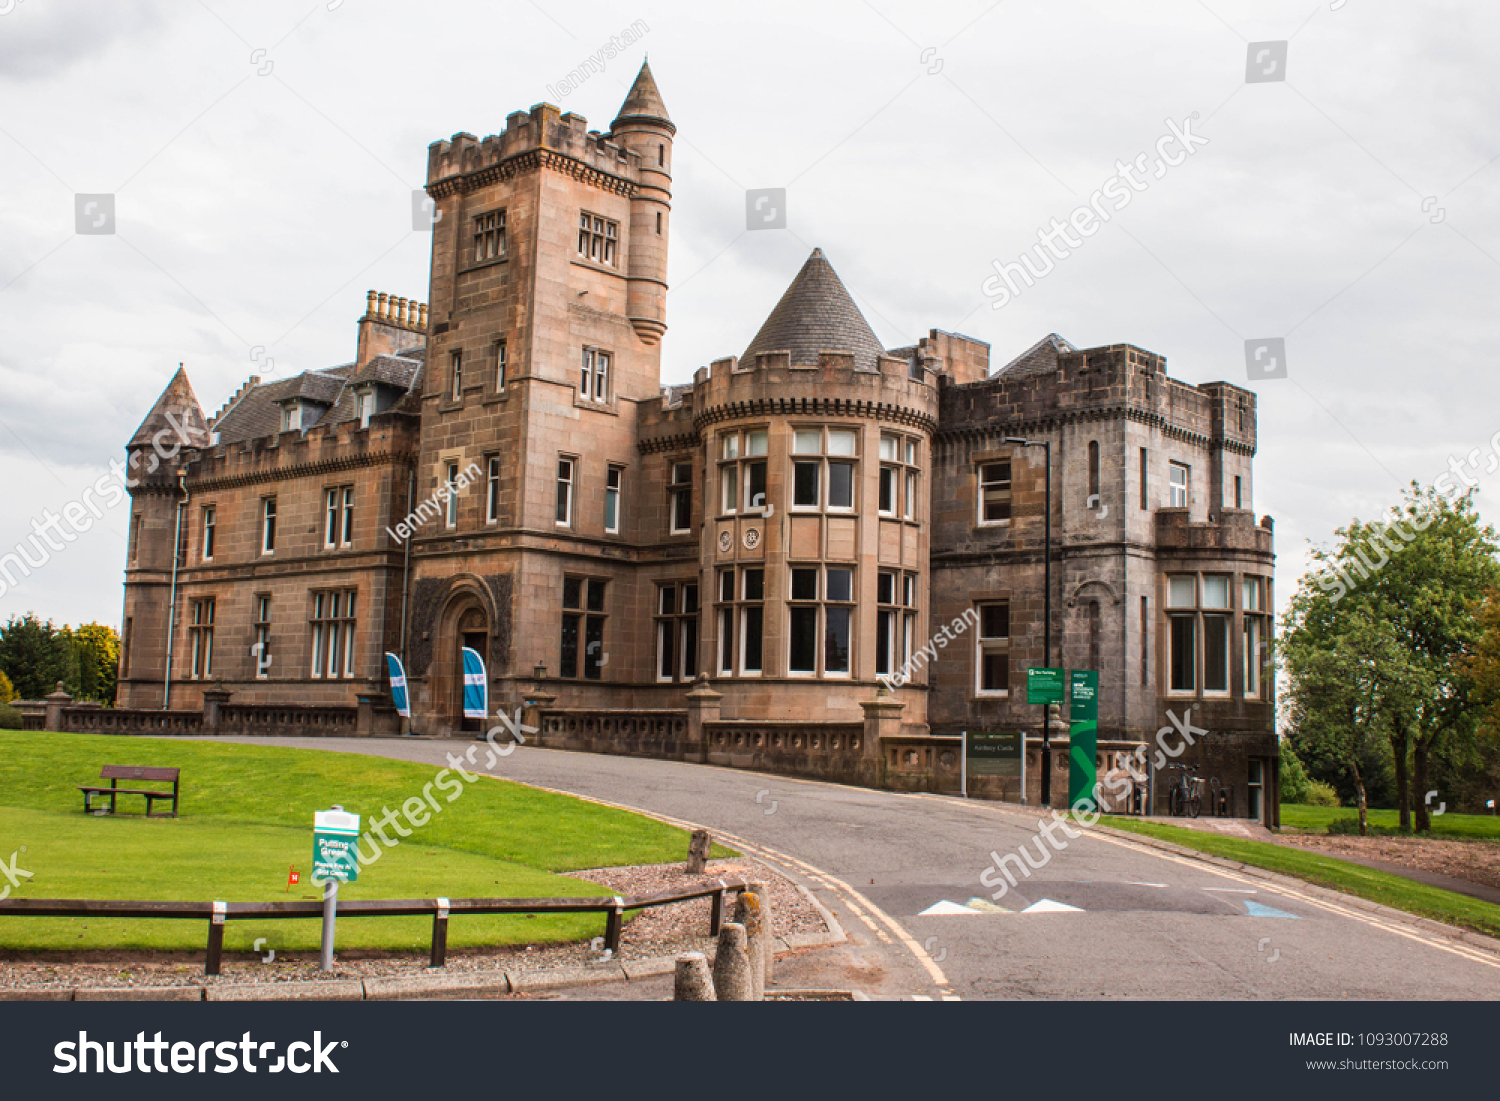 stock-photo-stirling-scotland-may-airthr